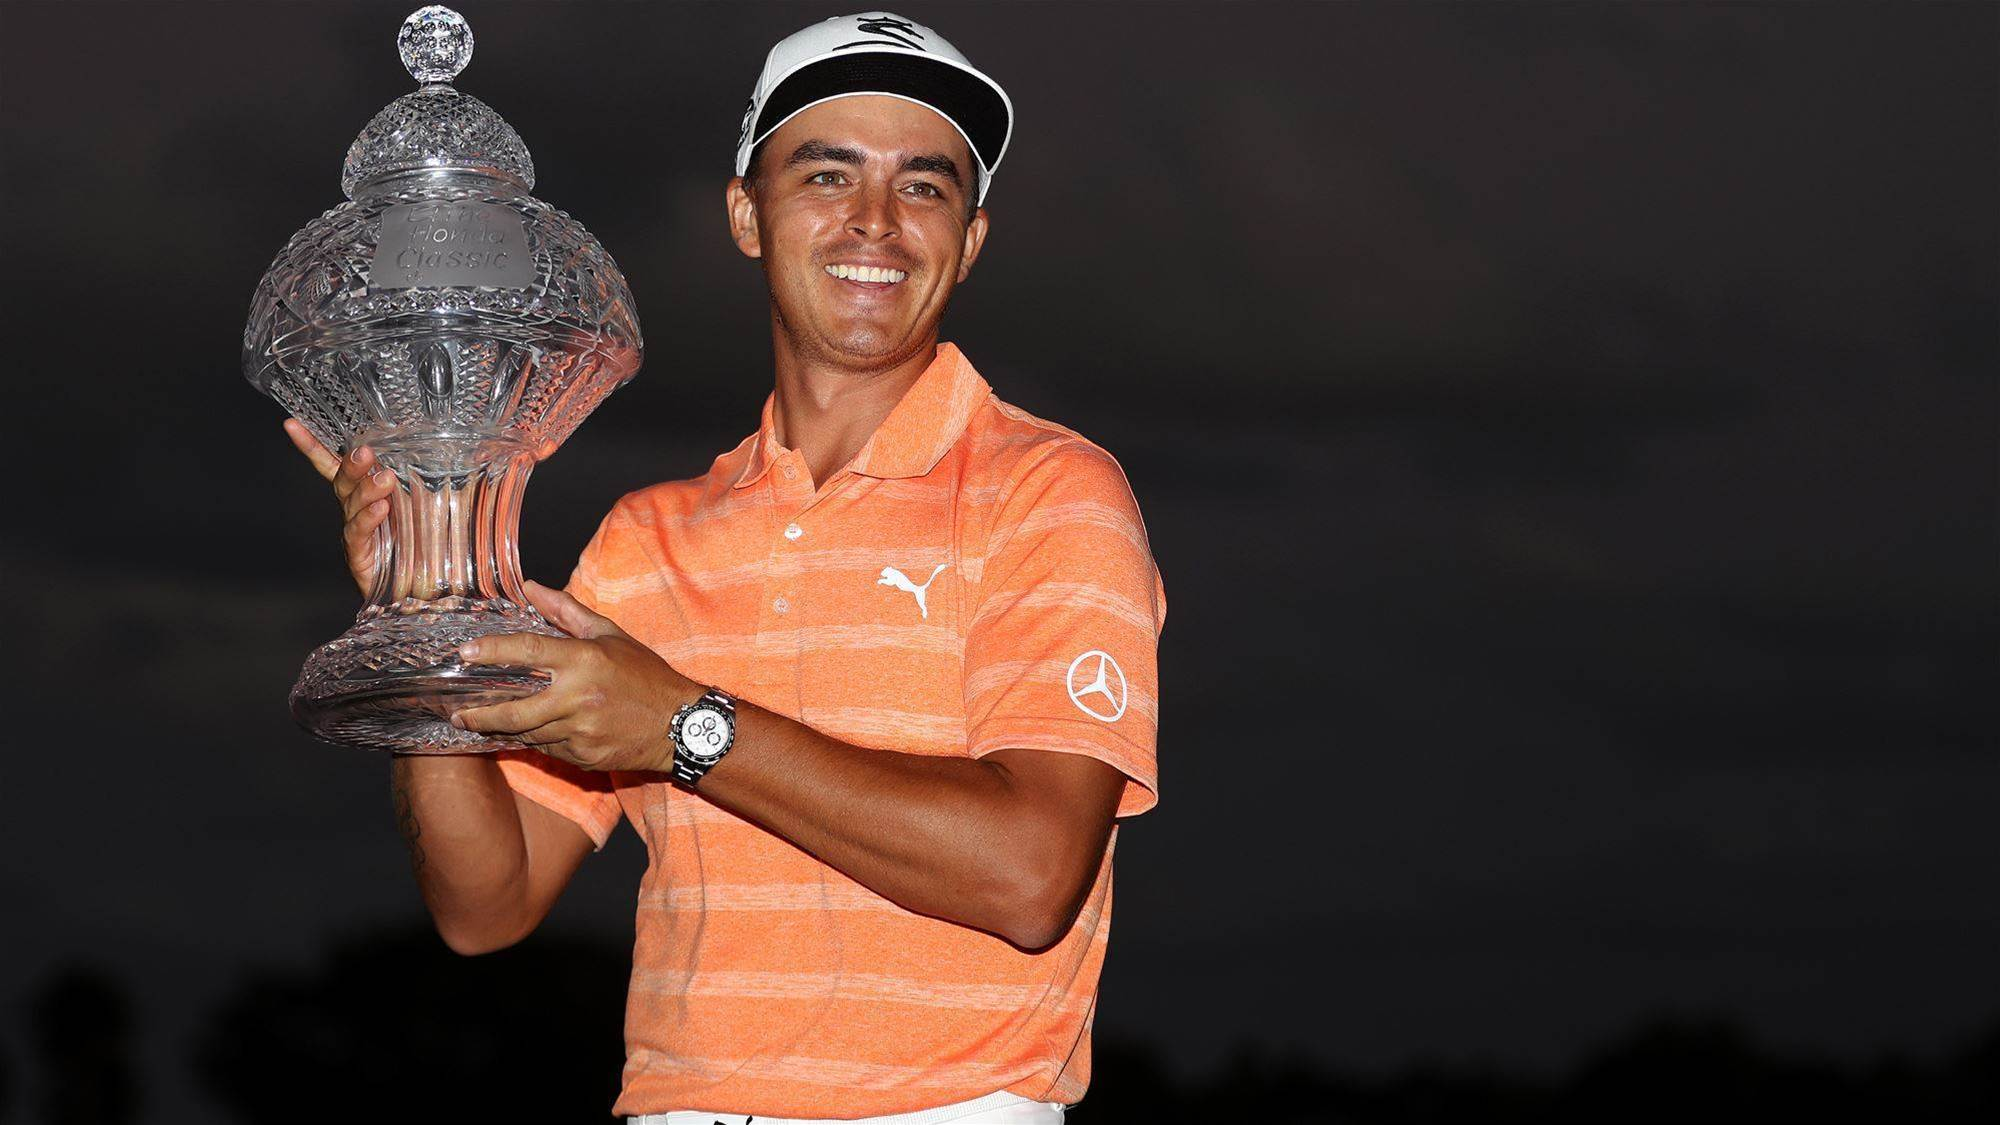 PGA TOUR: Fowler wins to join Masters conversation